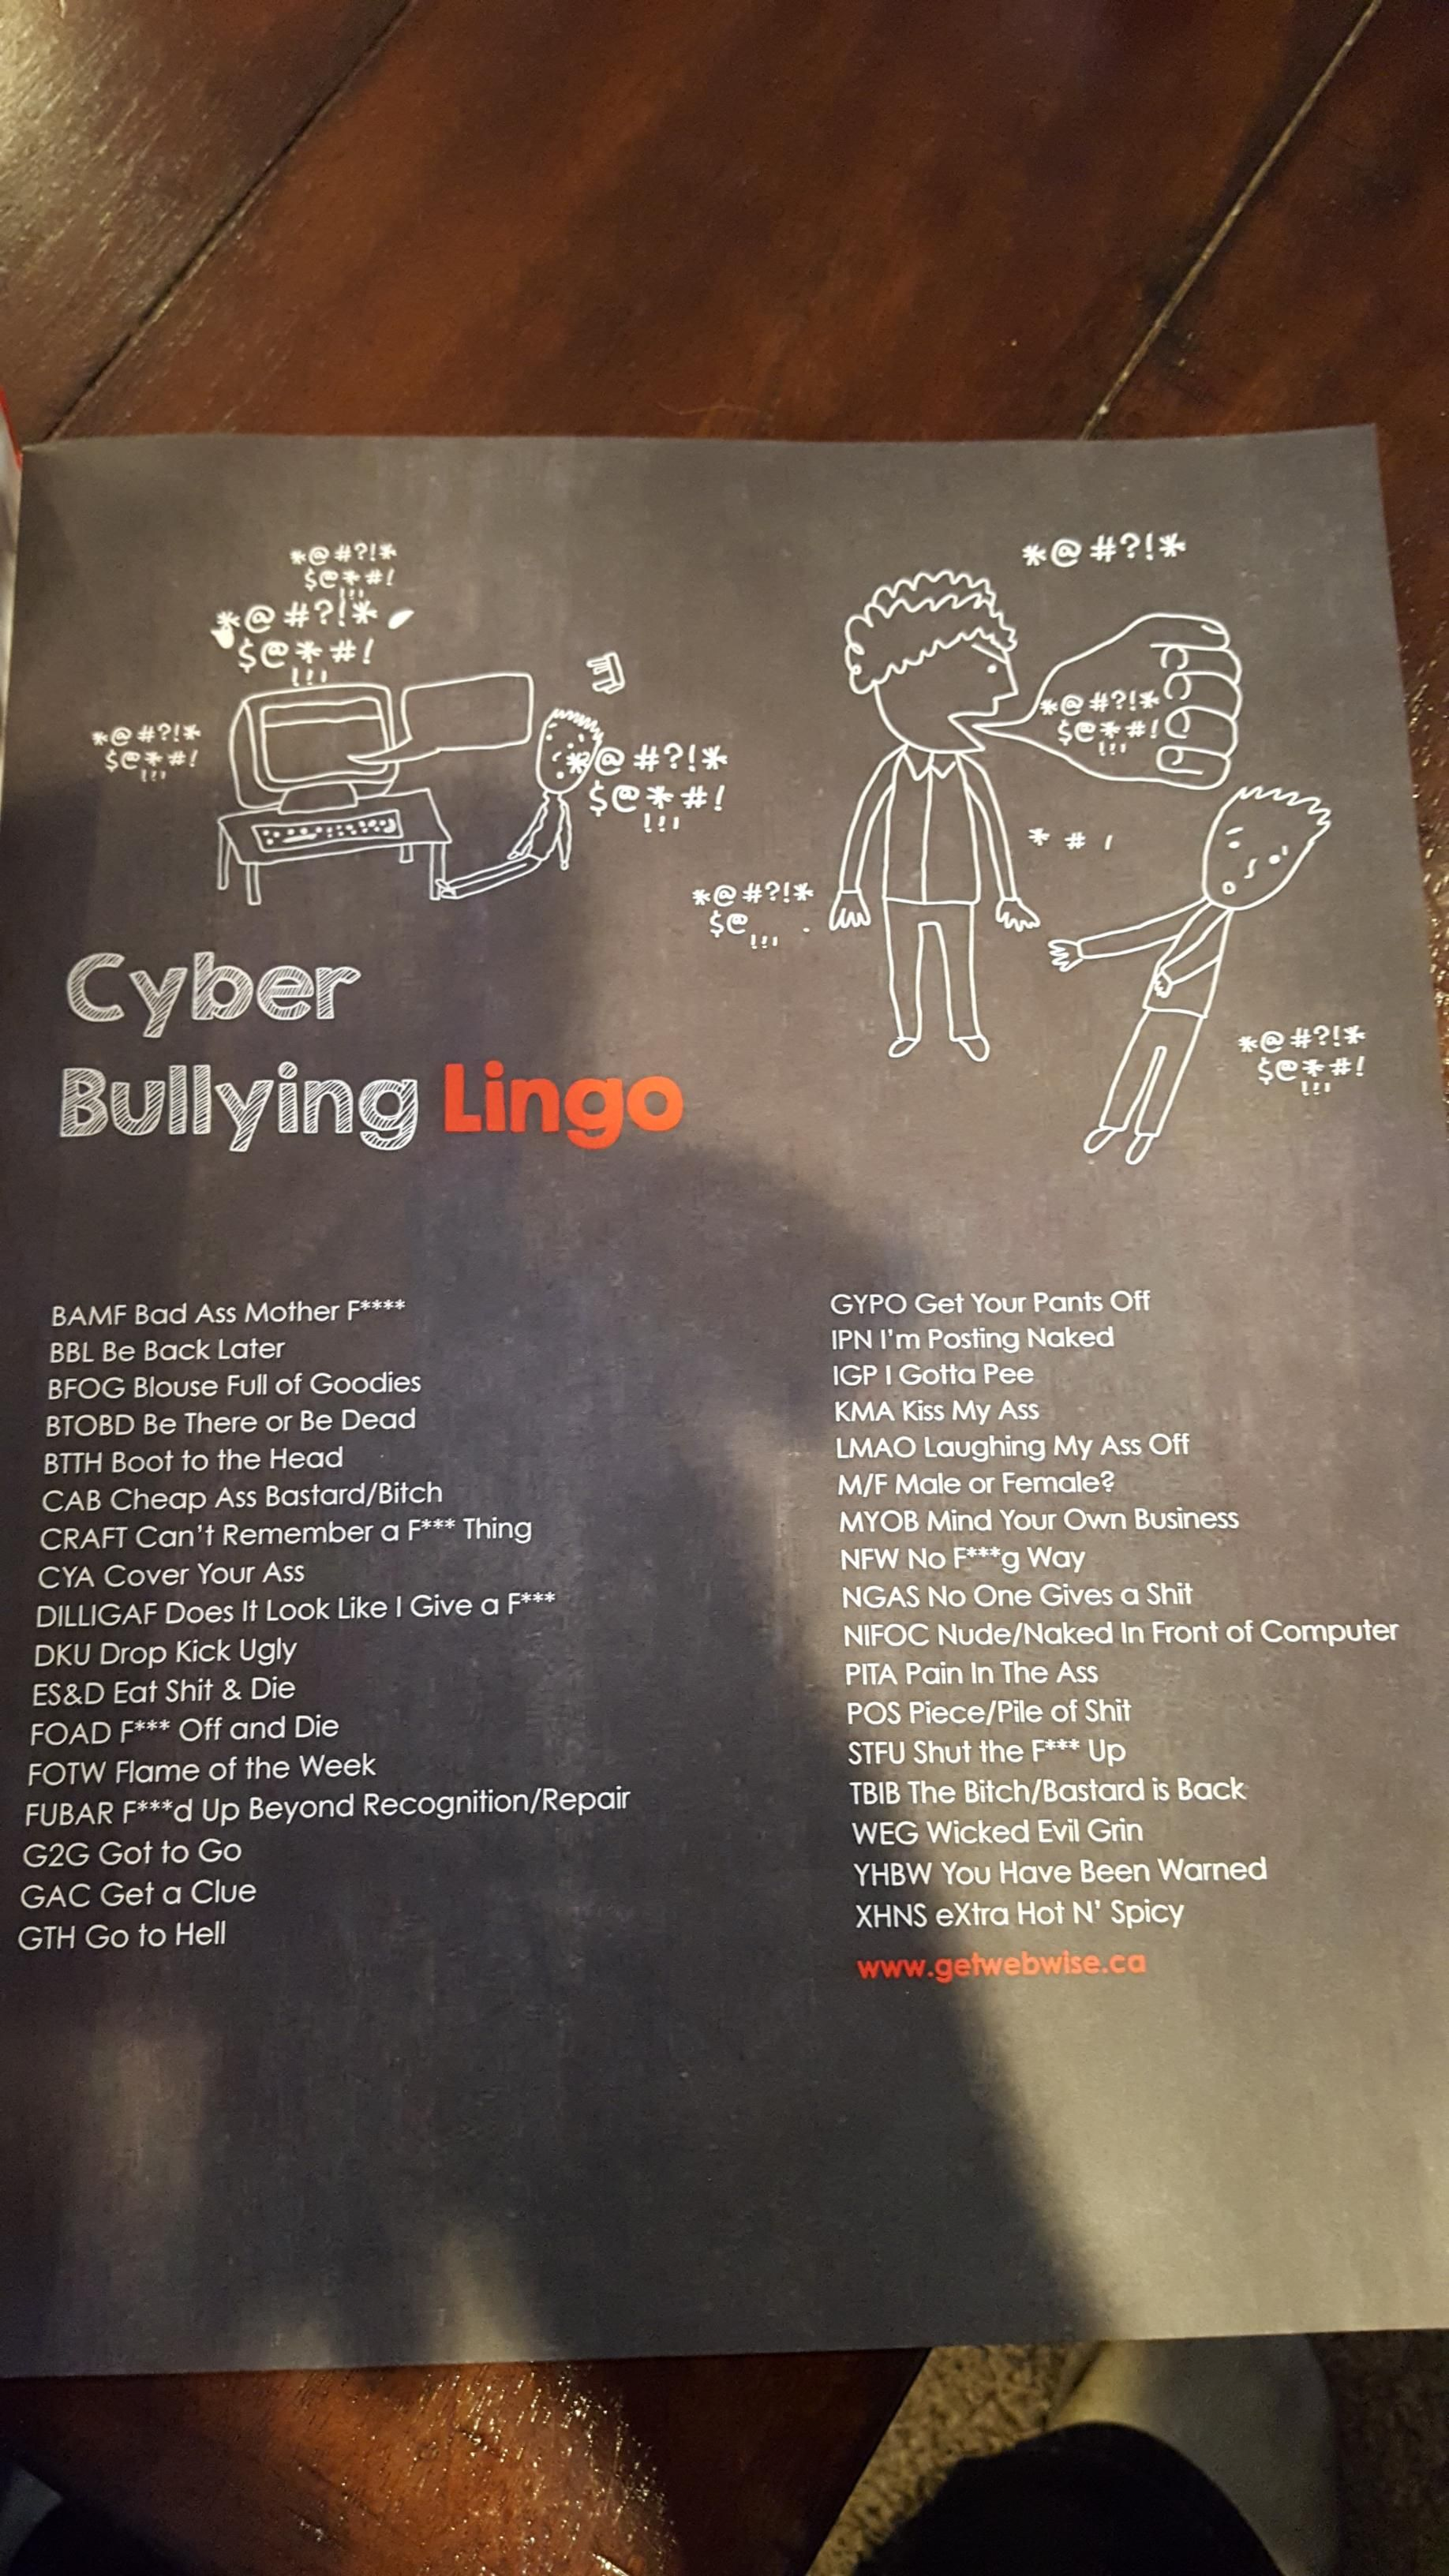 cyber bullying lingo my nephew brought home  [ 1836 x 3264 Pixel ]